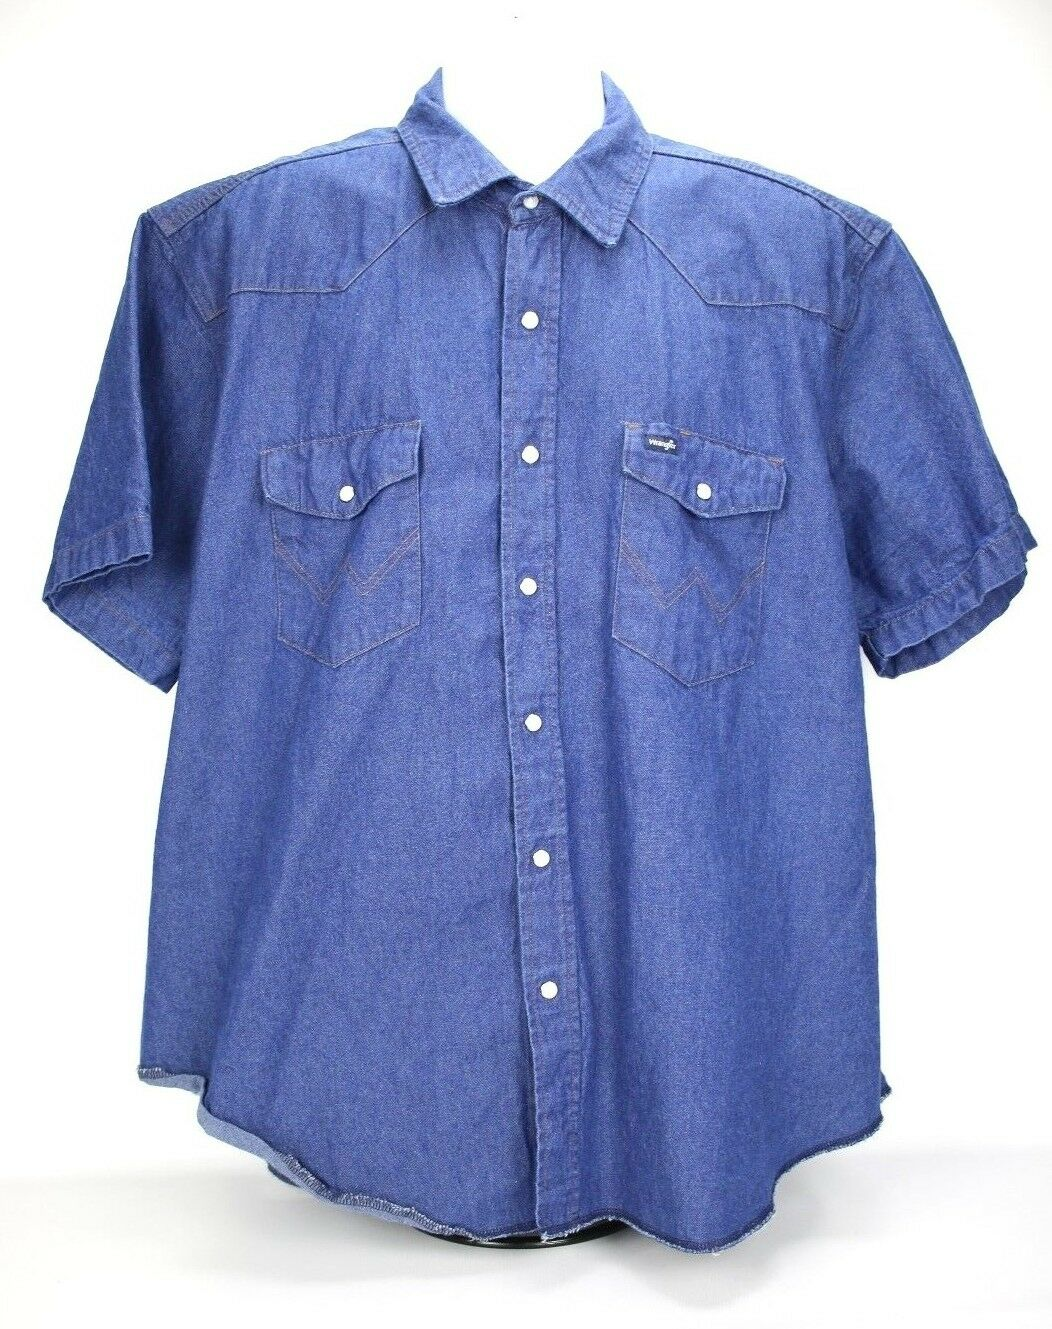 Wrangler Shirt Mens 2X bluee Denim Short Sleeve Pearl Snap Western Casual Jean